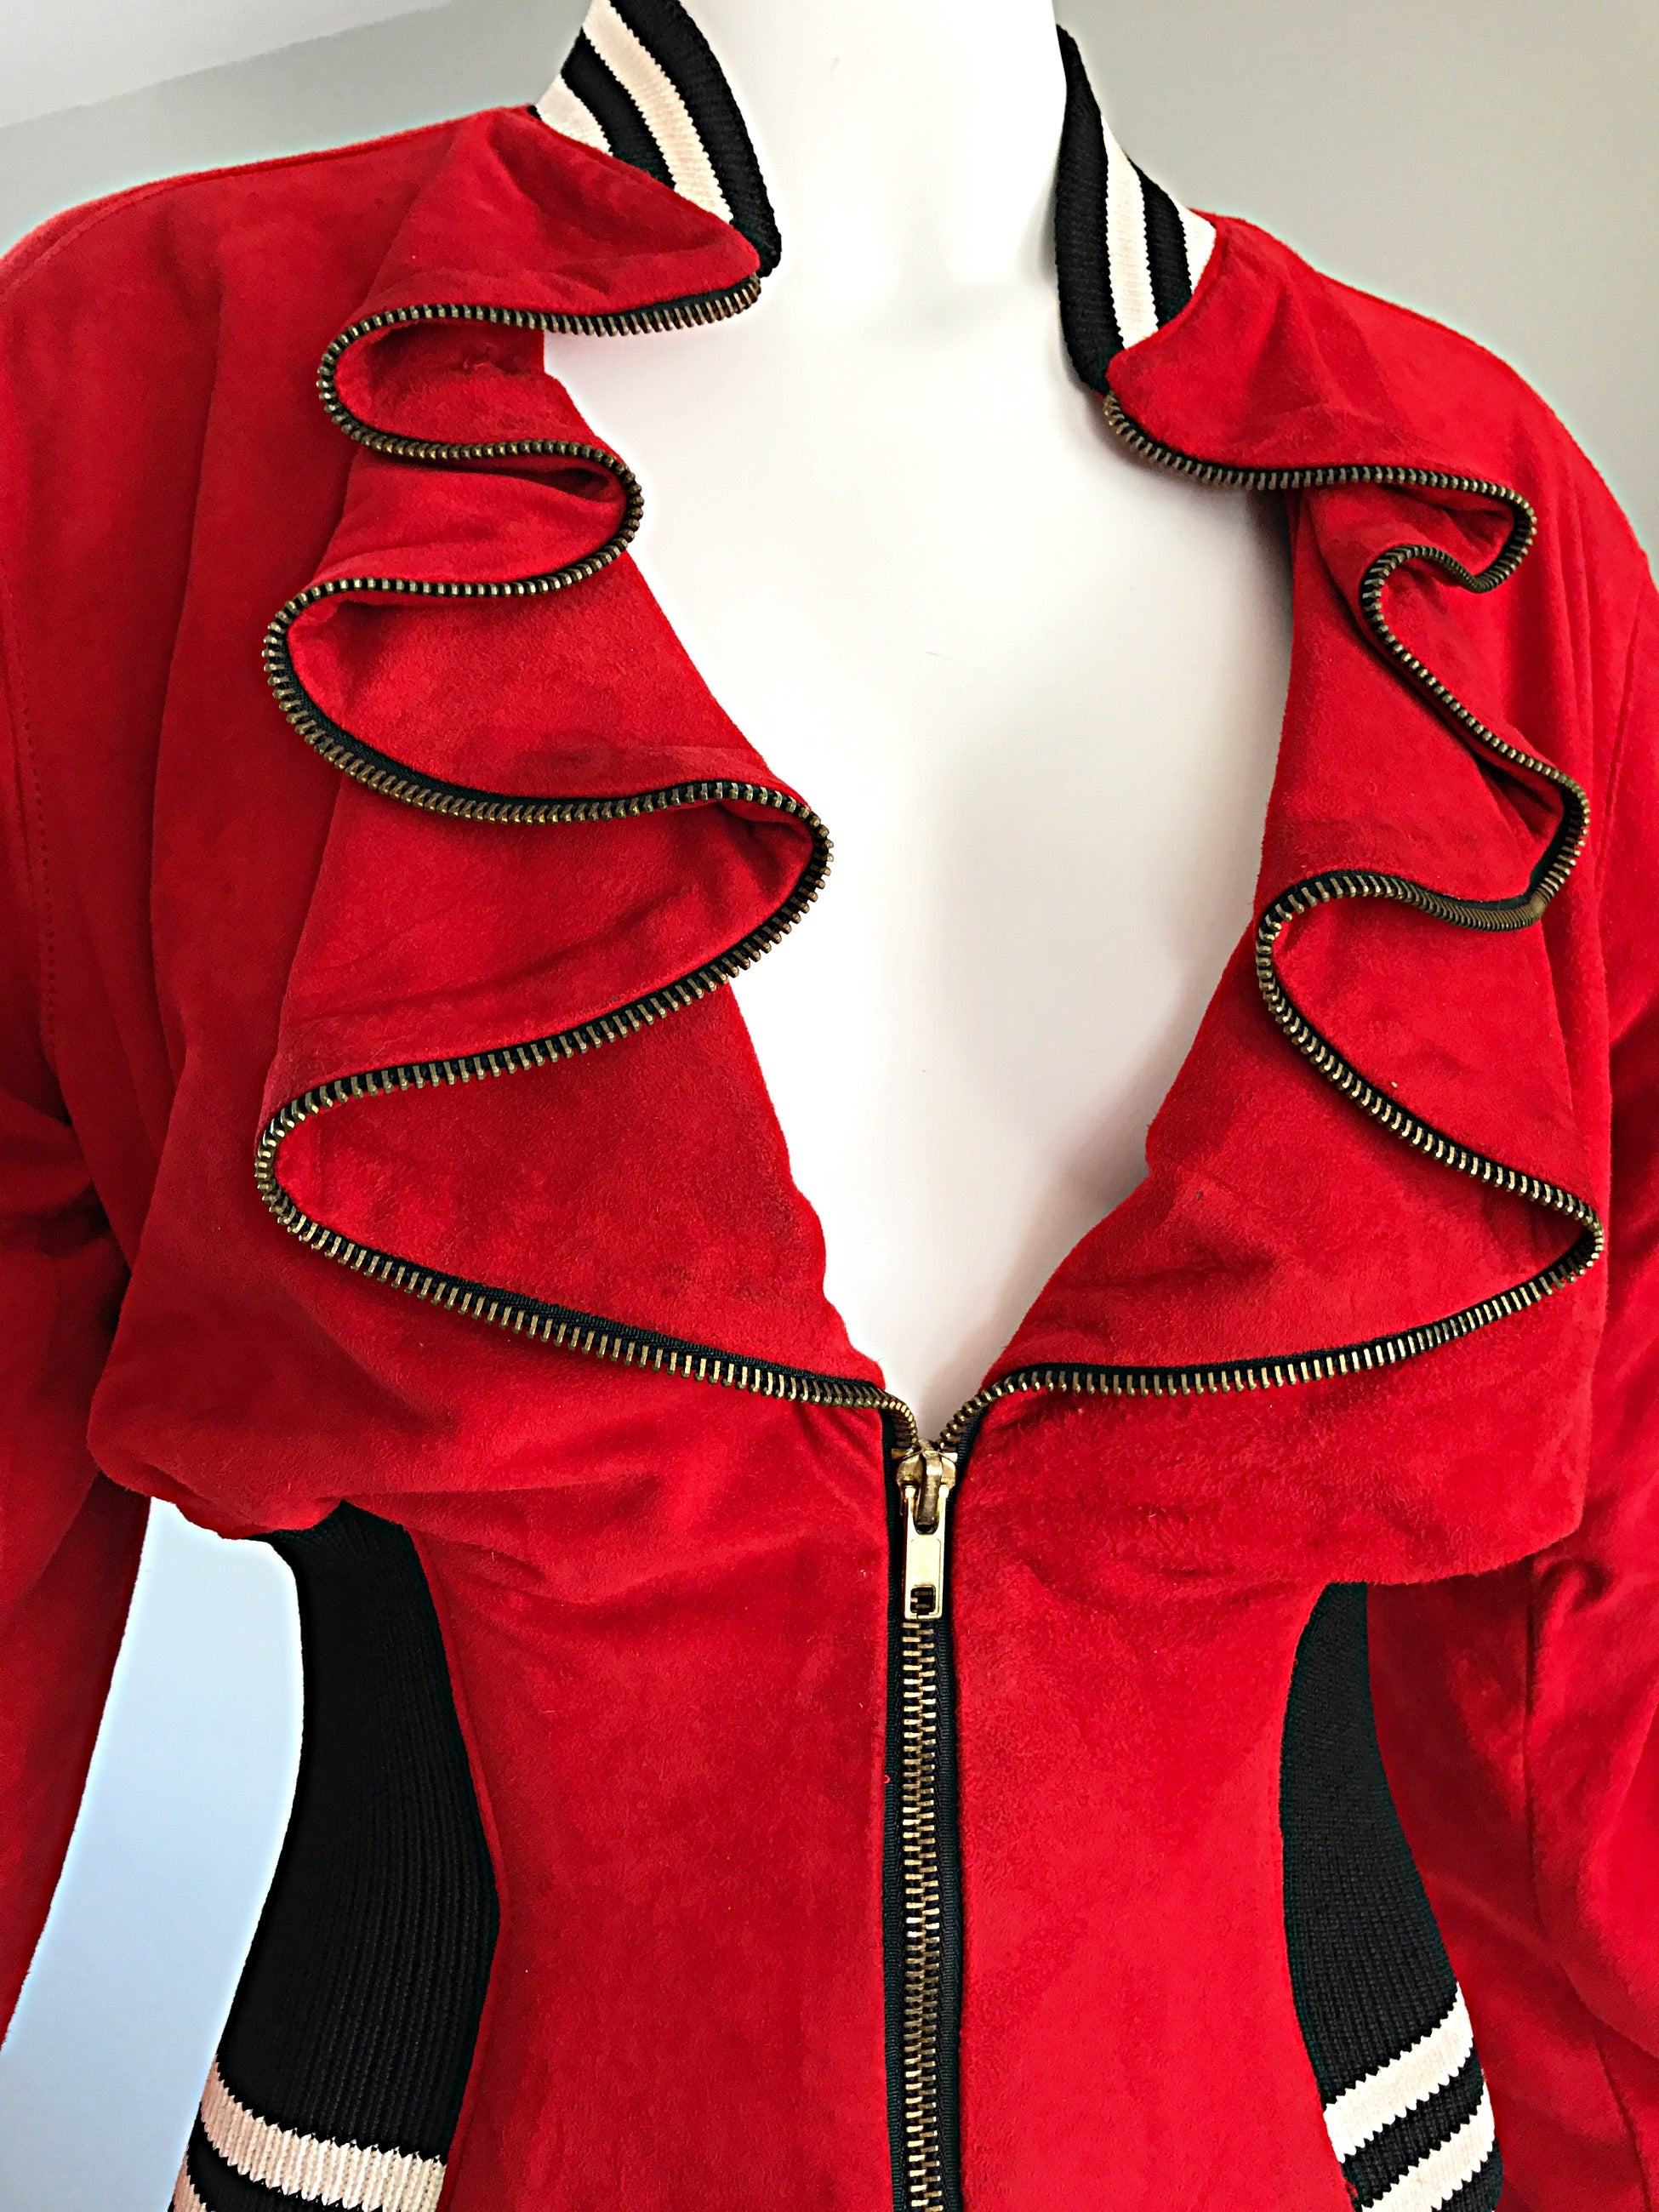 Rare Vintage Byron Lars 1990s Red Leather Suede Varsity 90s ' Zipper '  Jacket at 1stdibs